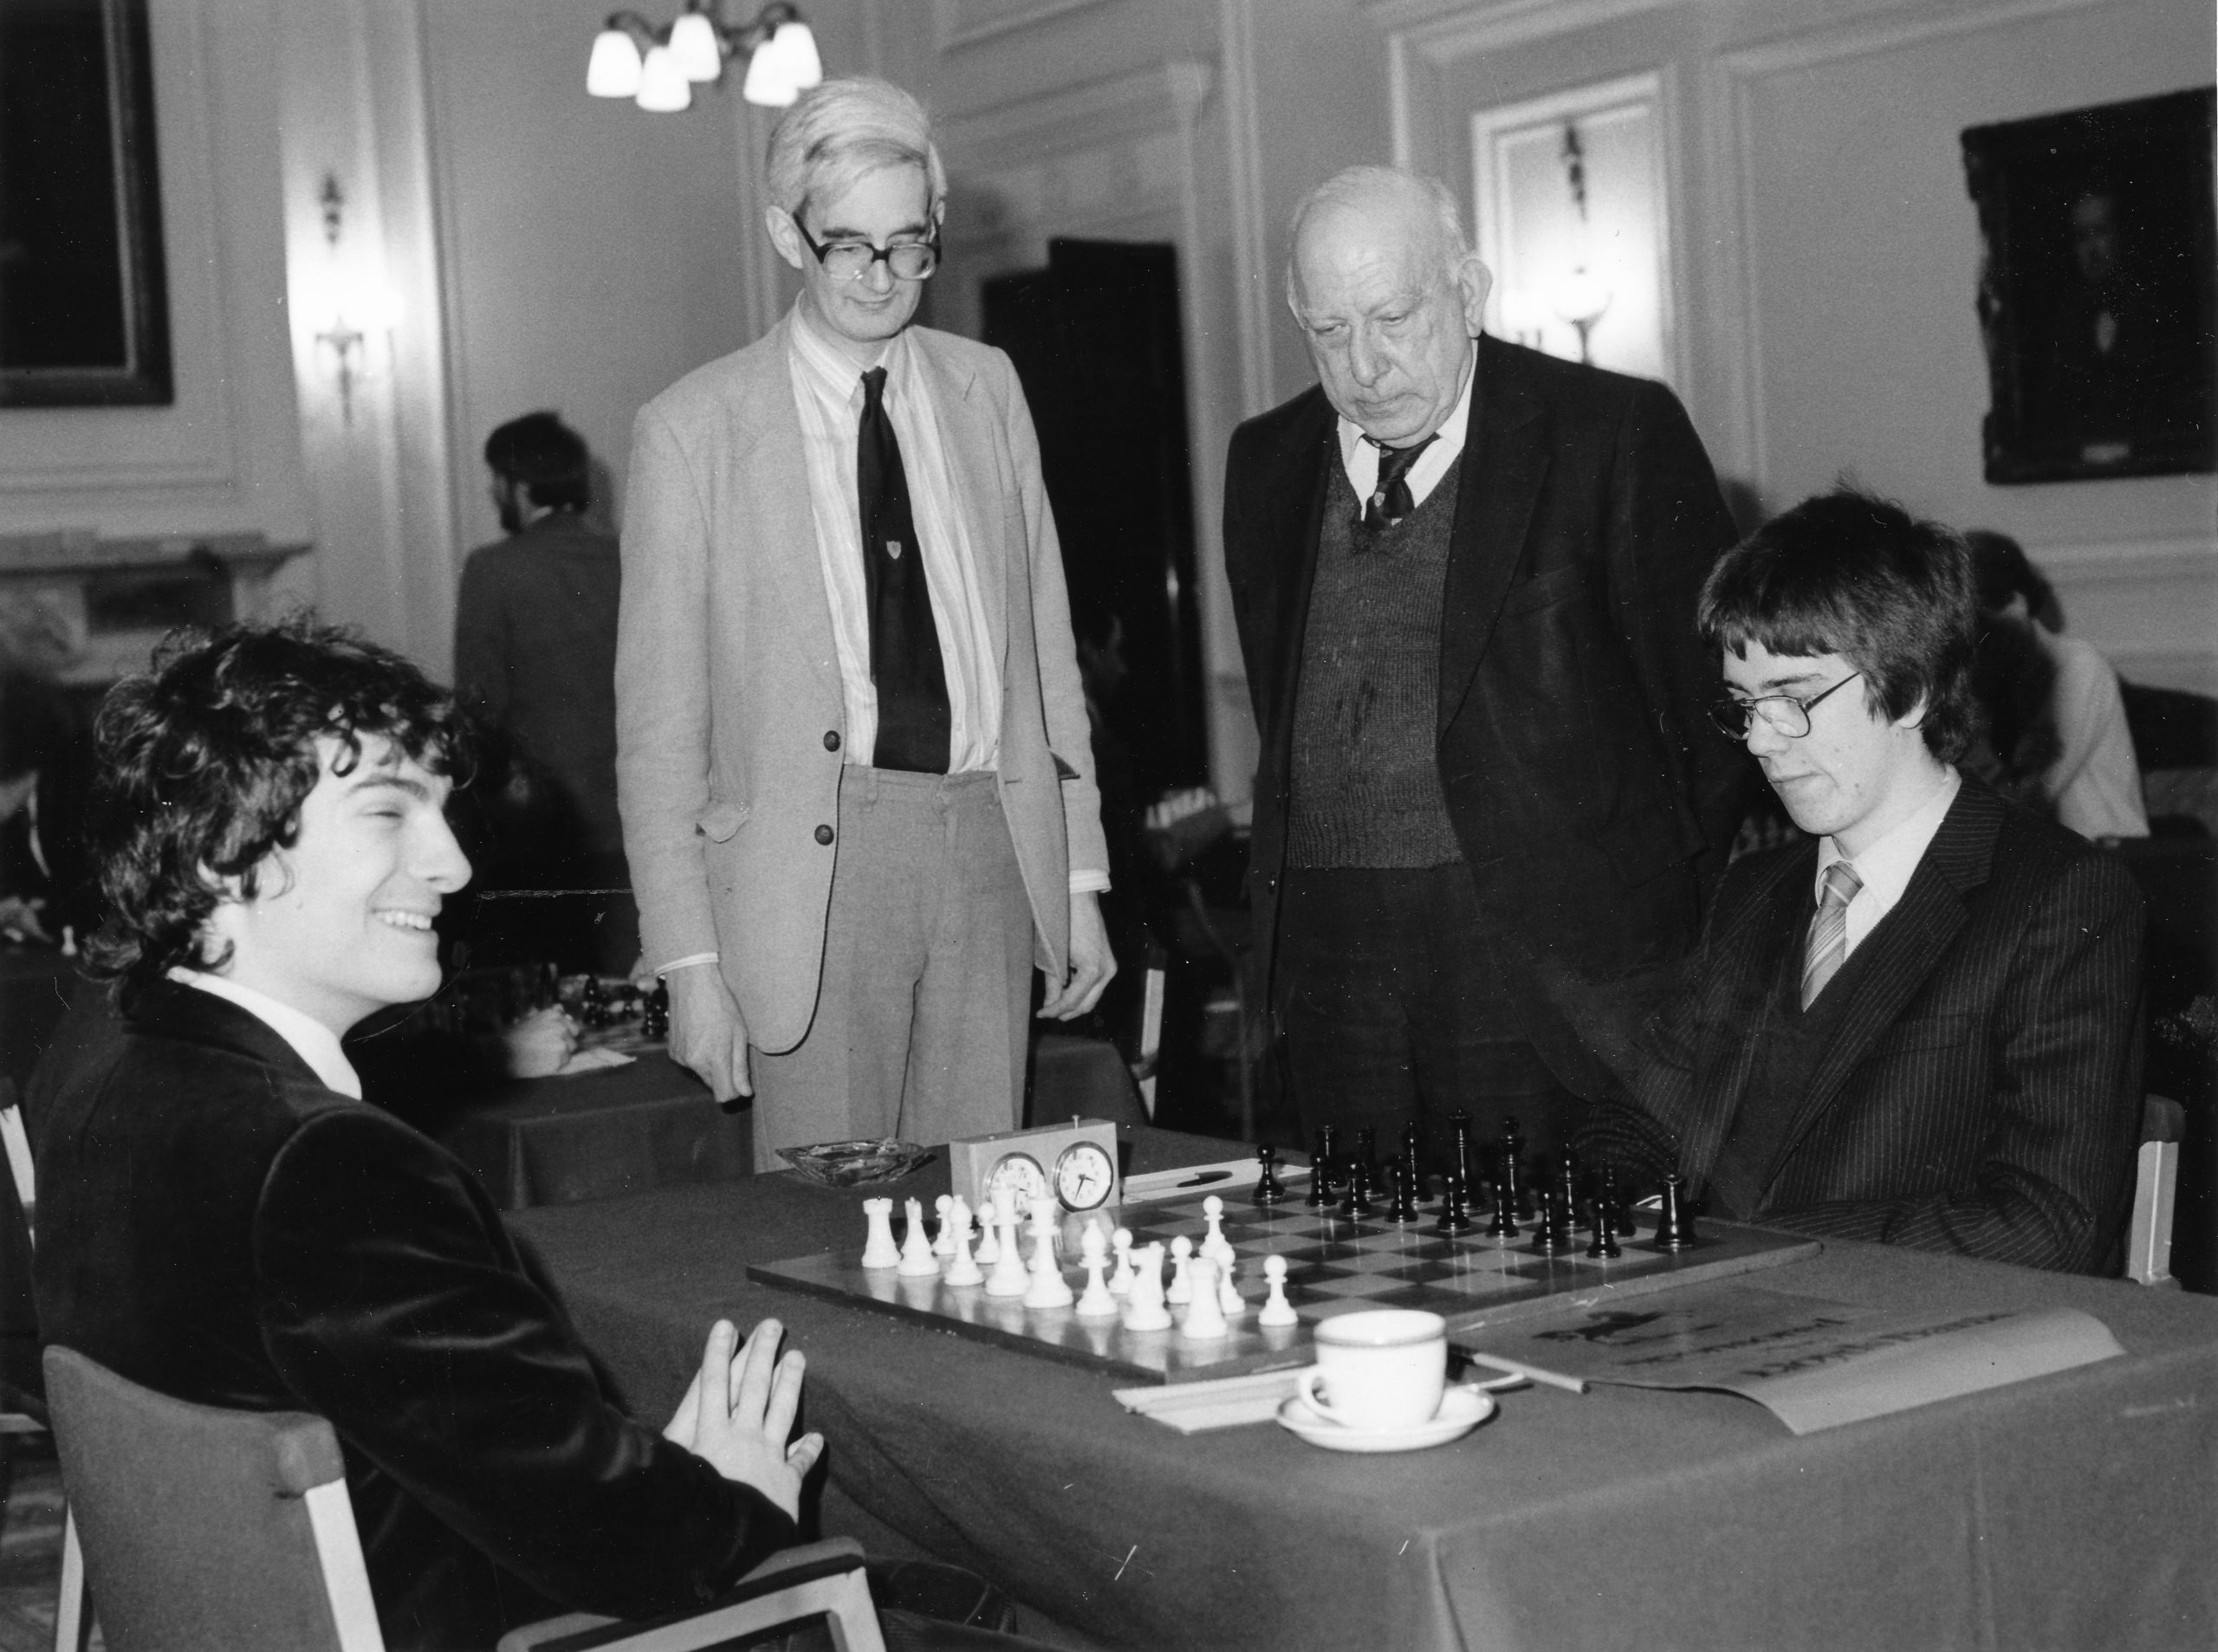 Adrian Hollis and Harry Golombek observer Andrew Dyson (Trinity) having played 1.d4 versus IM William Watson (Merton) during the 1984 Varsity match sponsored by Lloyds Bank